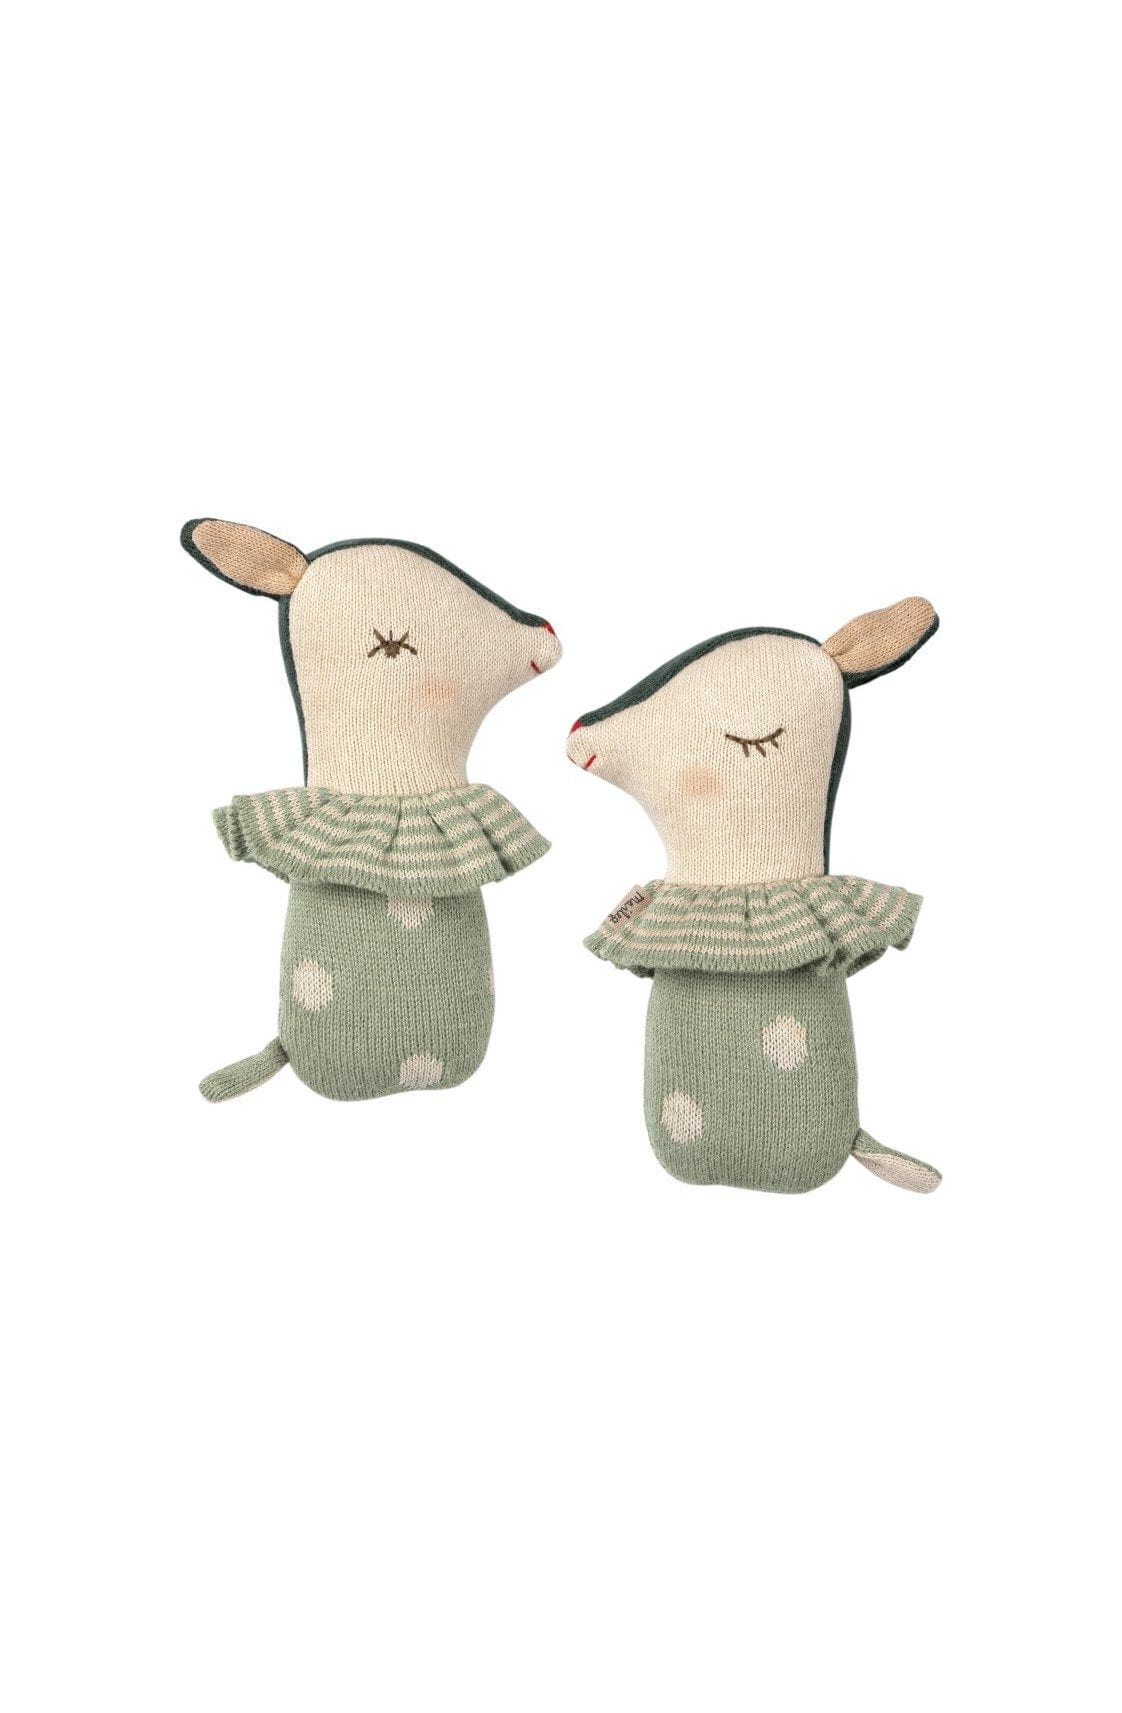 Maileg Bambi Rattle Dusty Mint - Hello Little Birdie